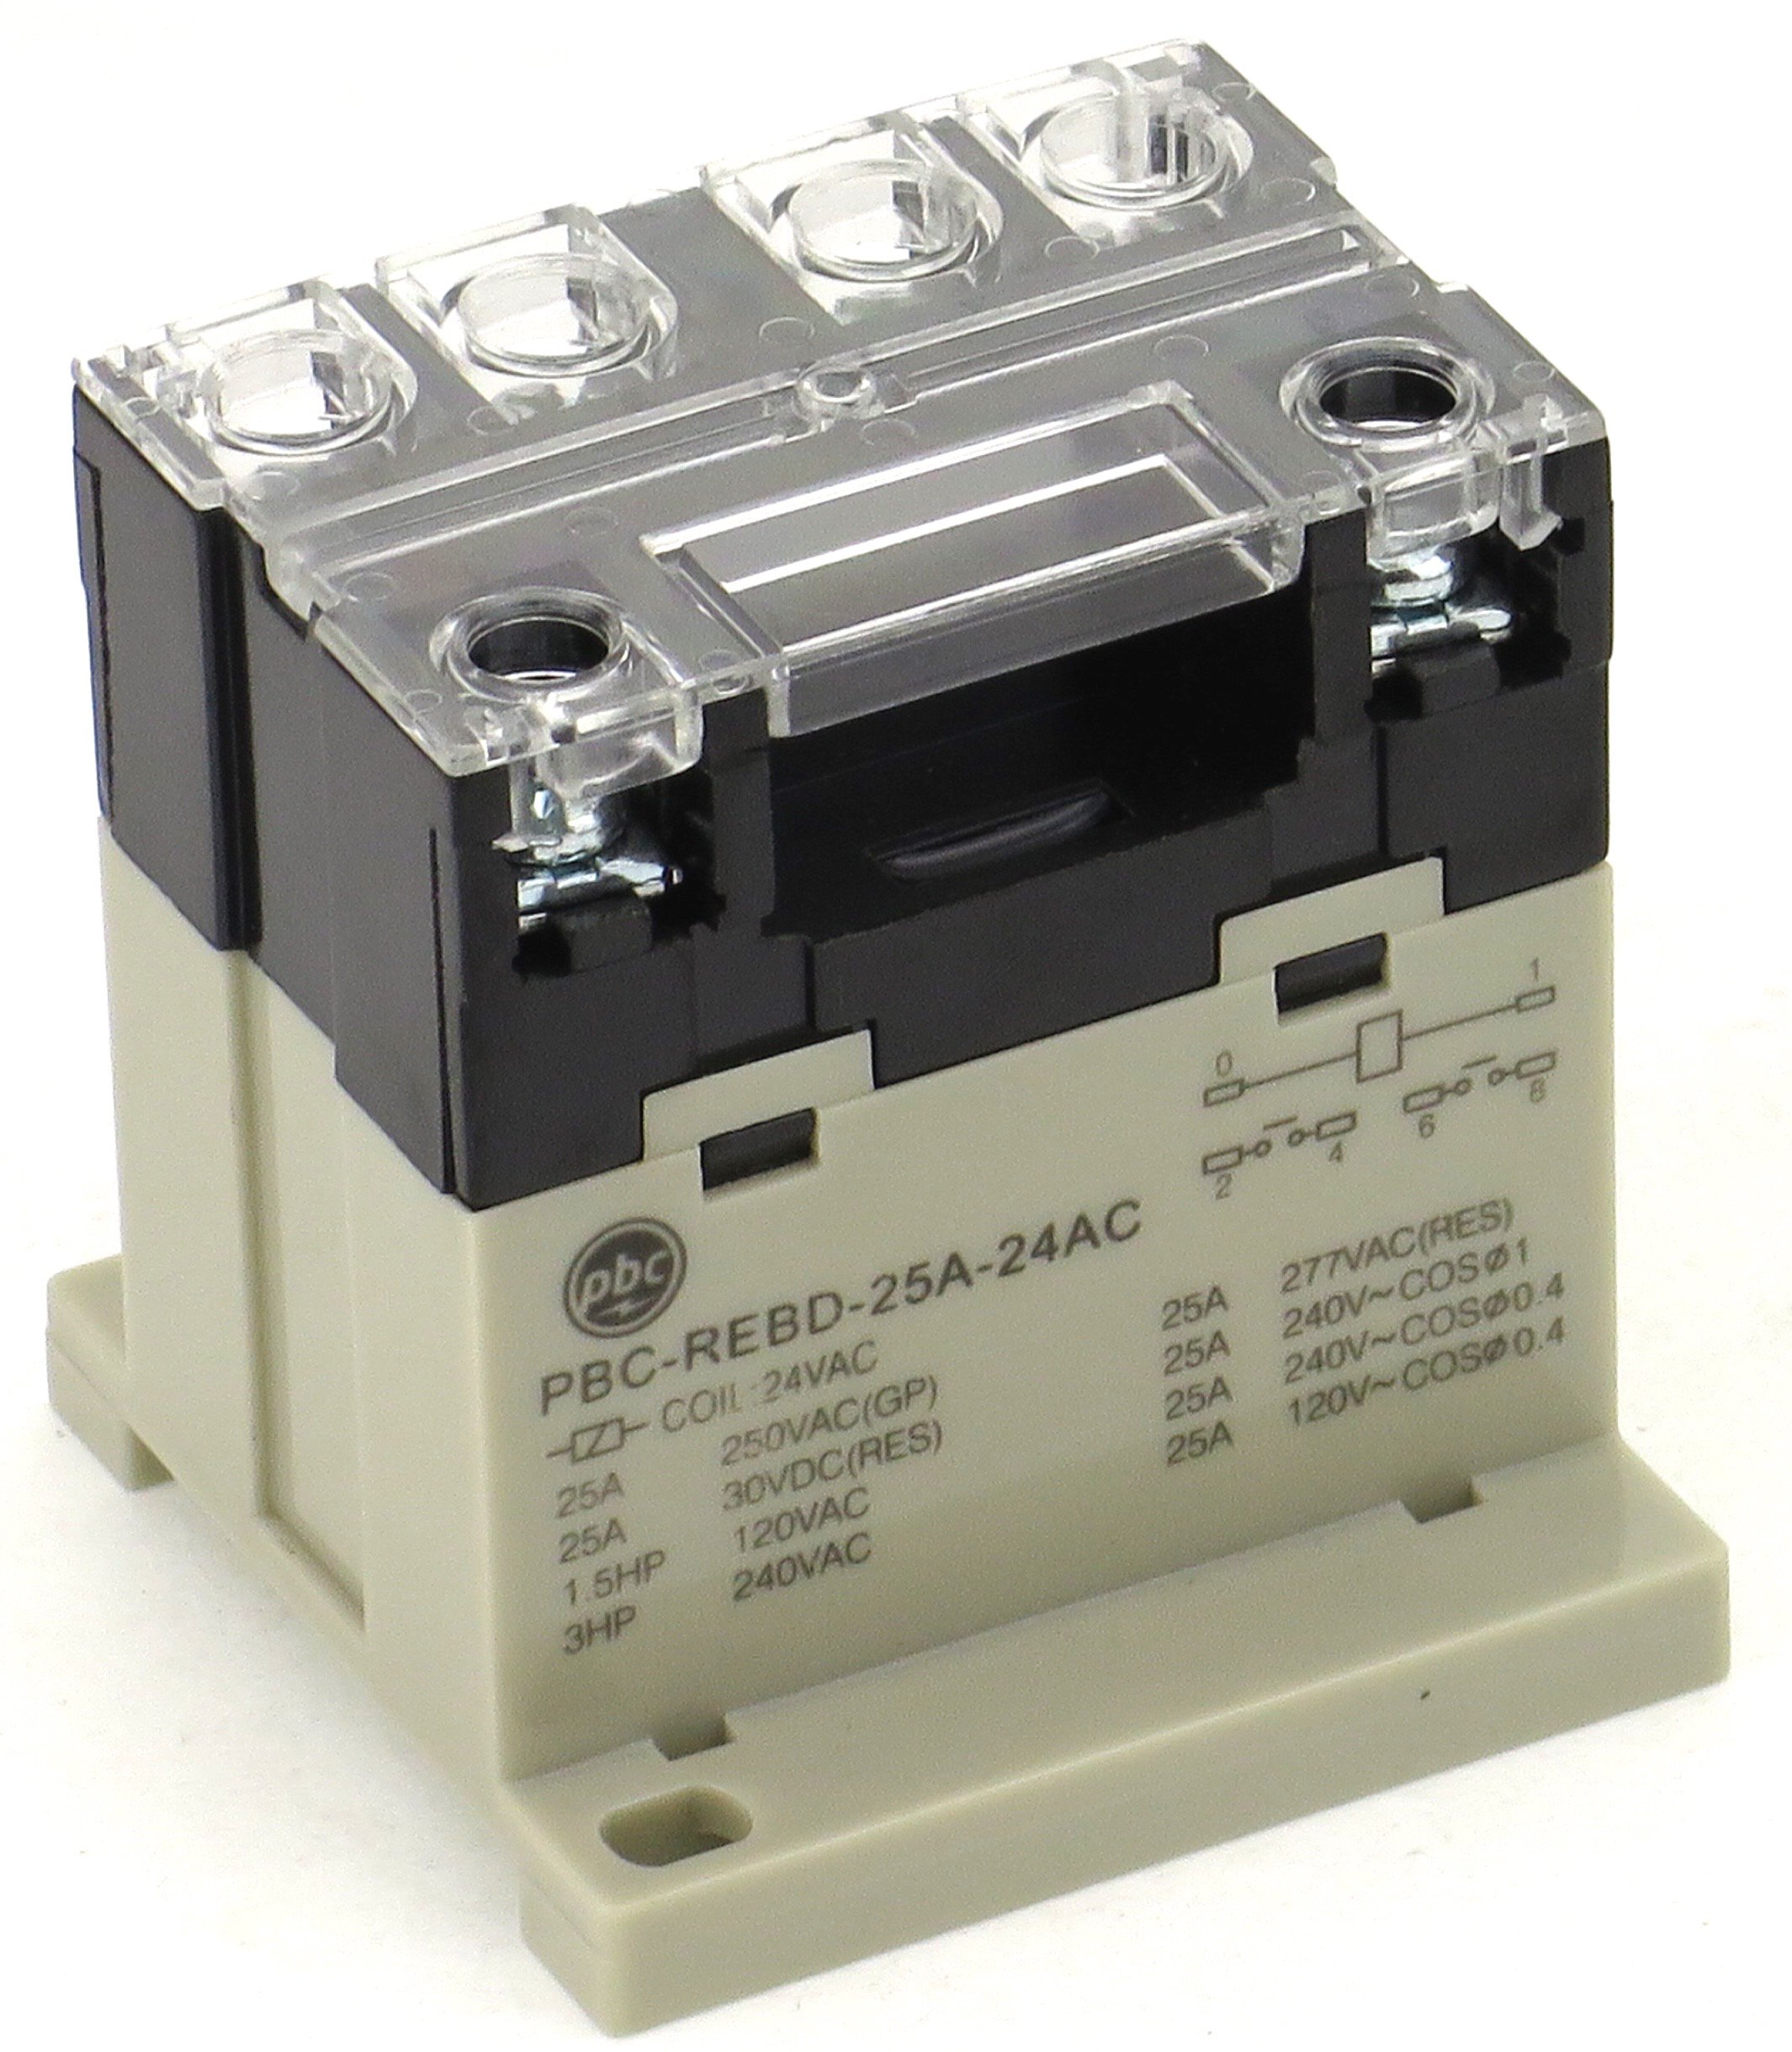 PBC-REBD-25A-24AC General Purpose Relay with Screw Terminal Top, Din Mount Contact, 25 Amp, 24 Volt Coil